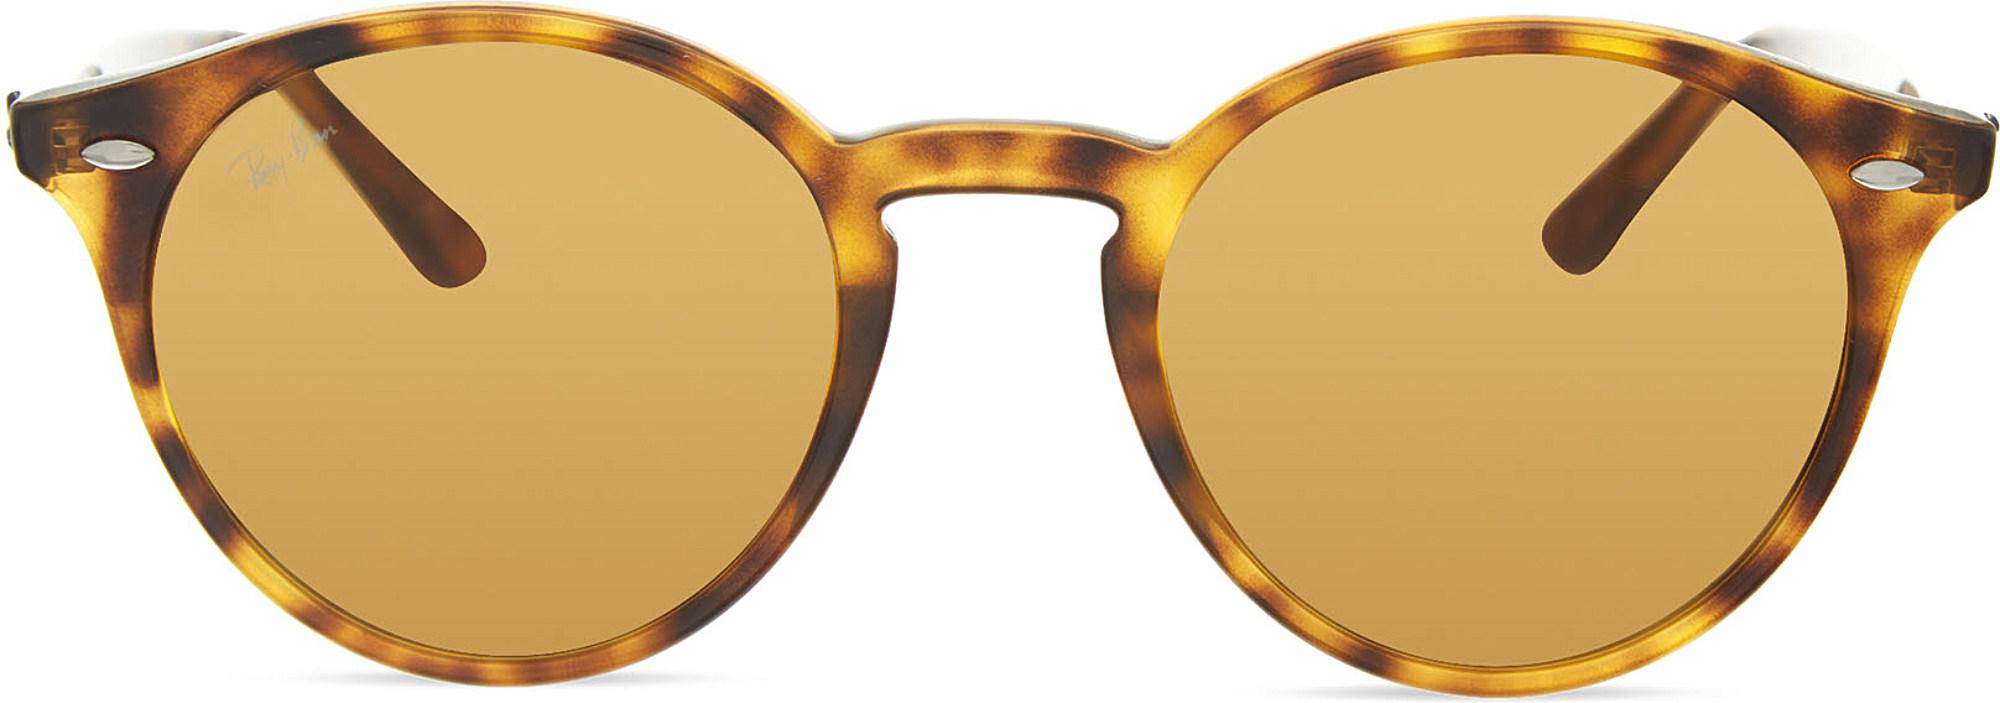 db6cf62c742 Lyst - Ray-Ban Rb2180 Round Sunglasses in Brown